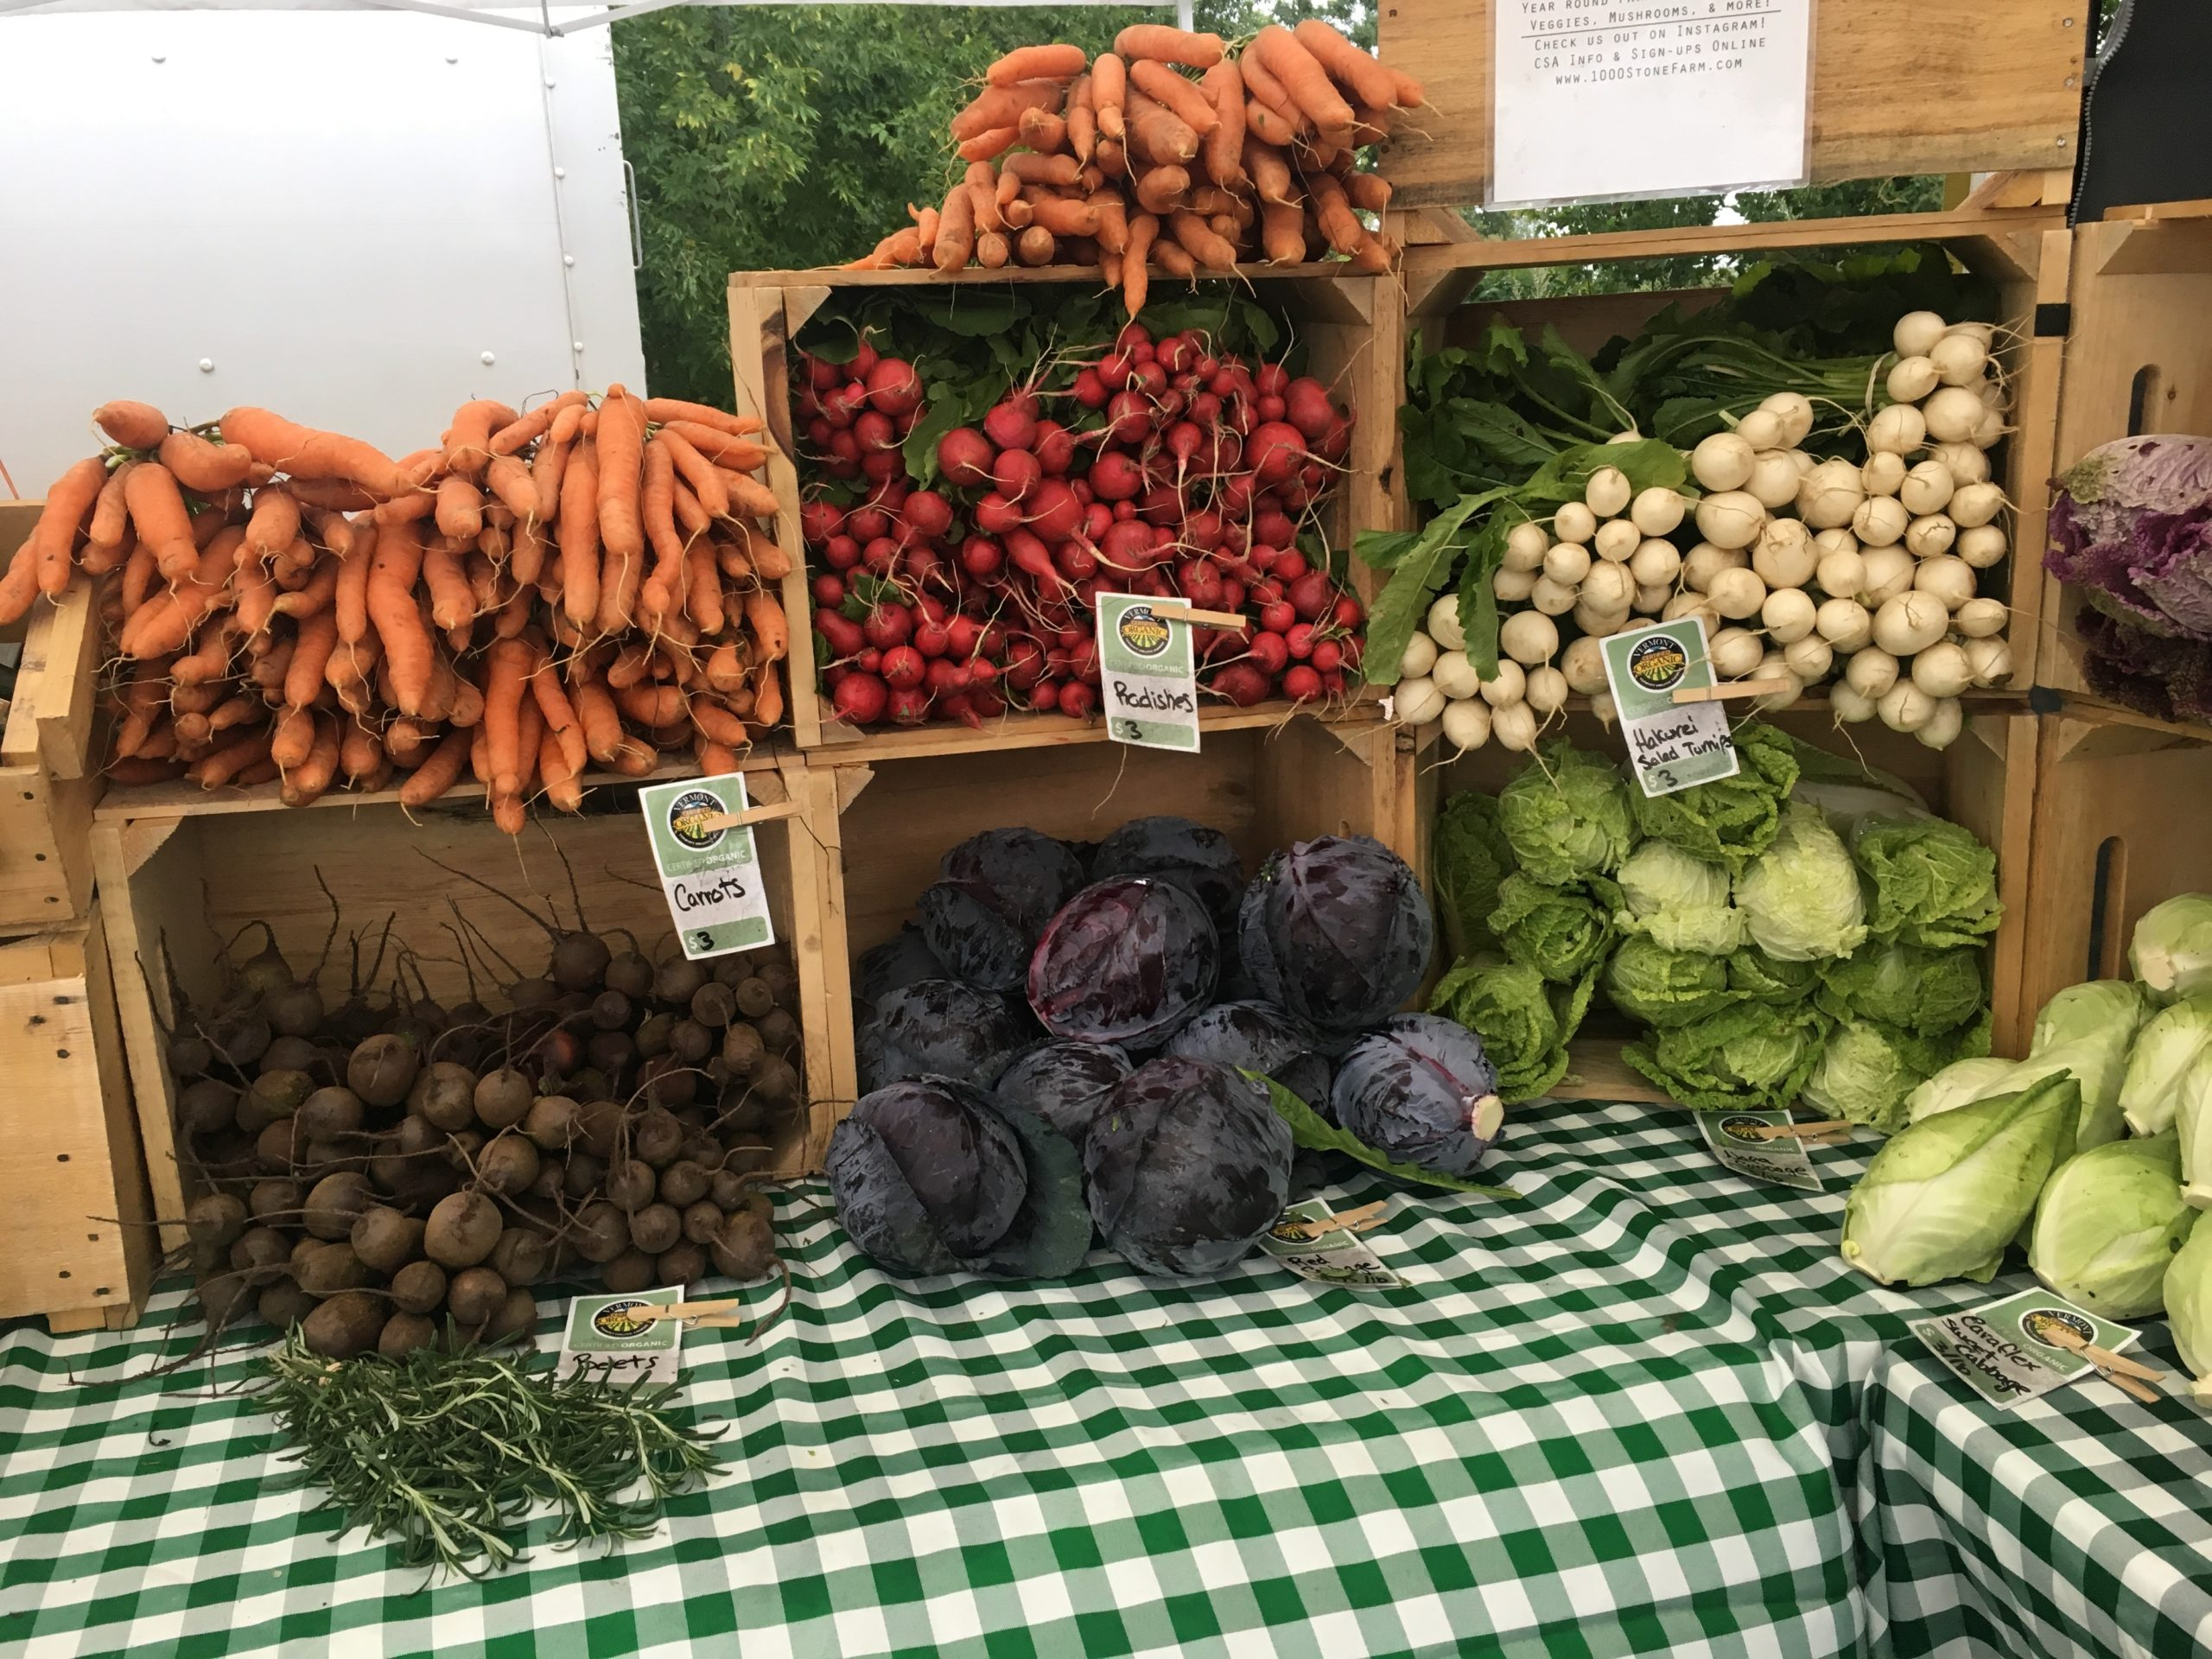 A colorful and well designed farmer's market display table.